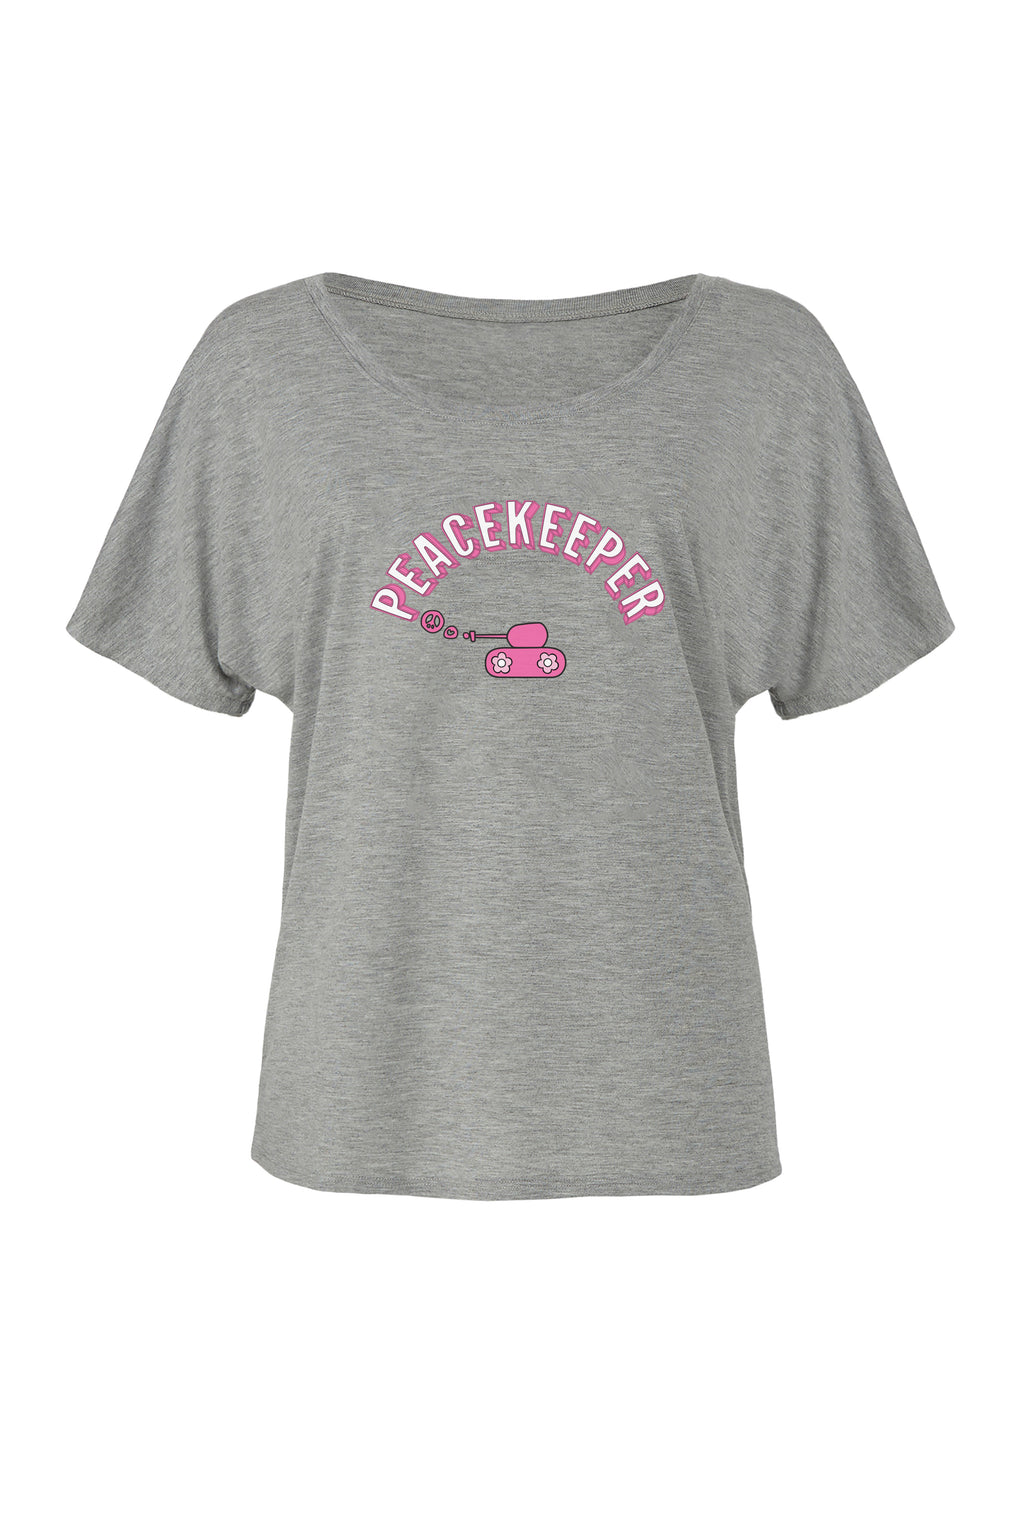 Athletic Heather Slouchy T-shirt with pink peacekeeper graphic for 34.00 at ARMY PINK